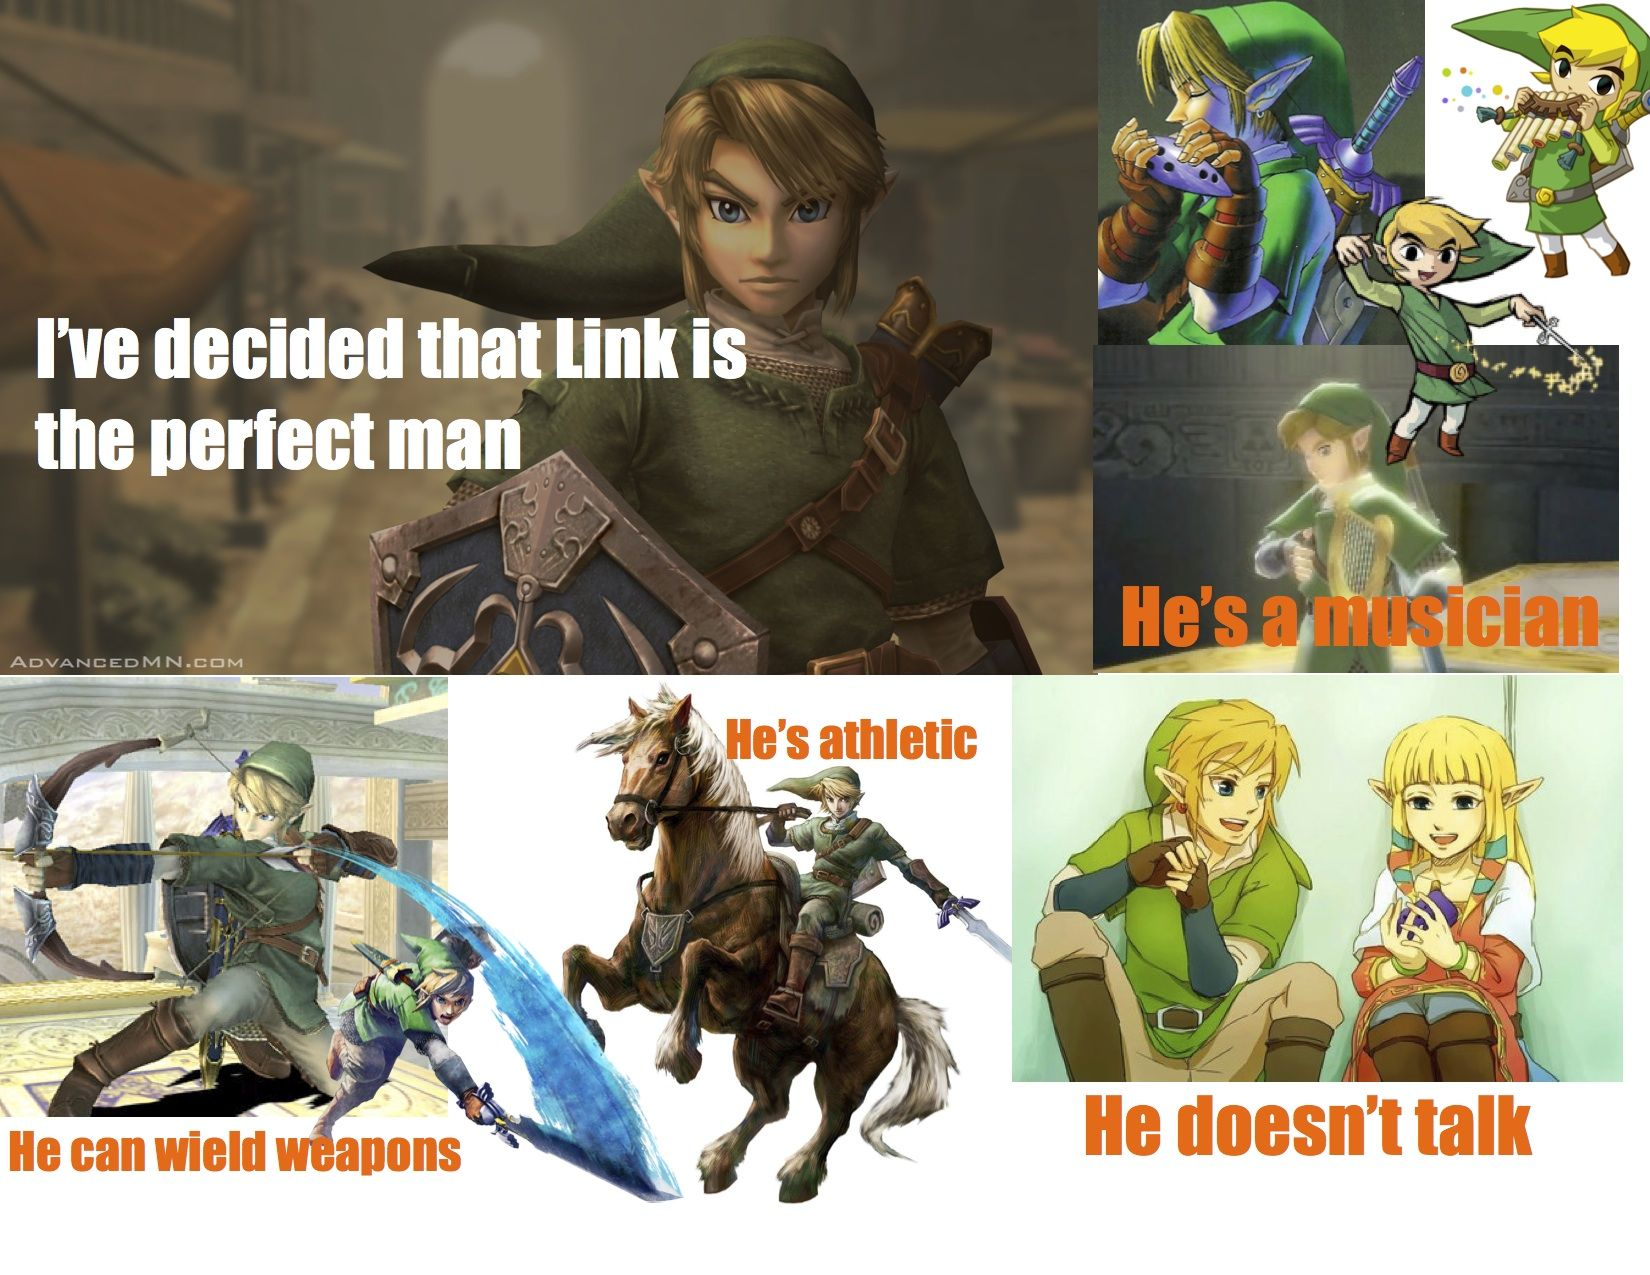 I've decided that Link is the perfect man